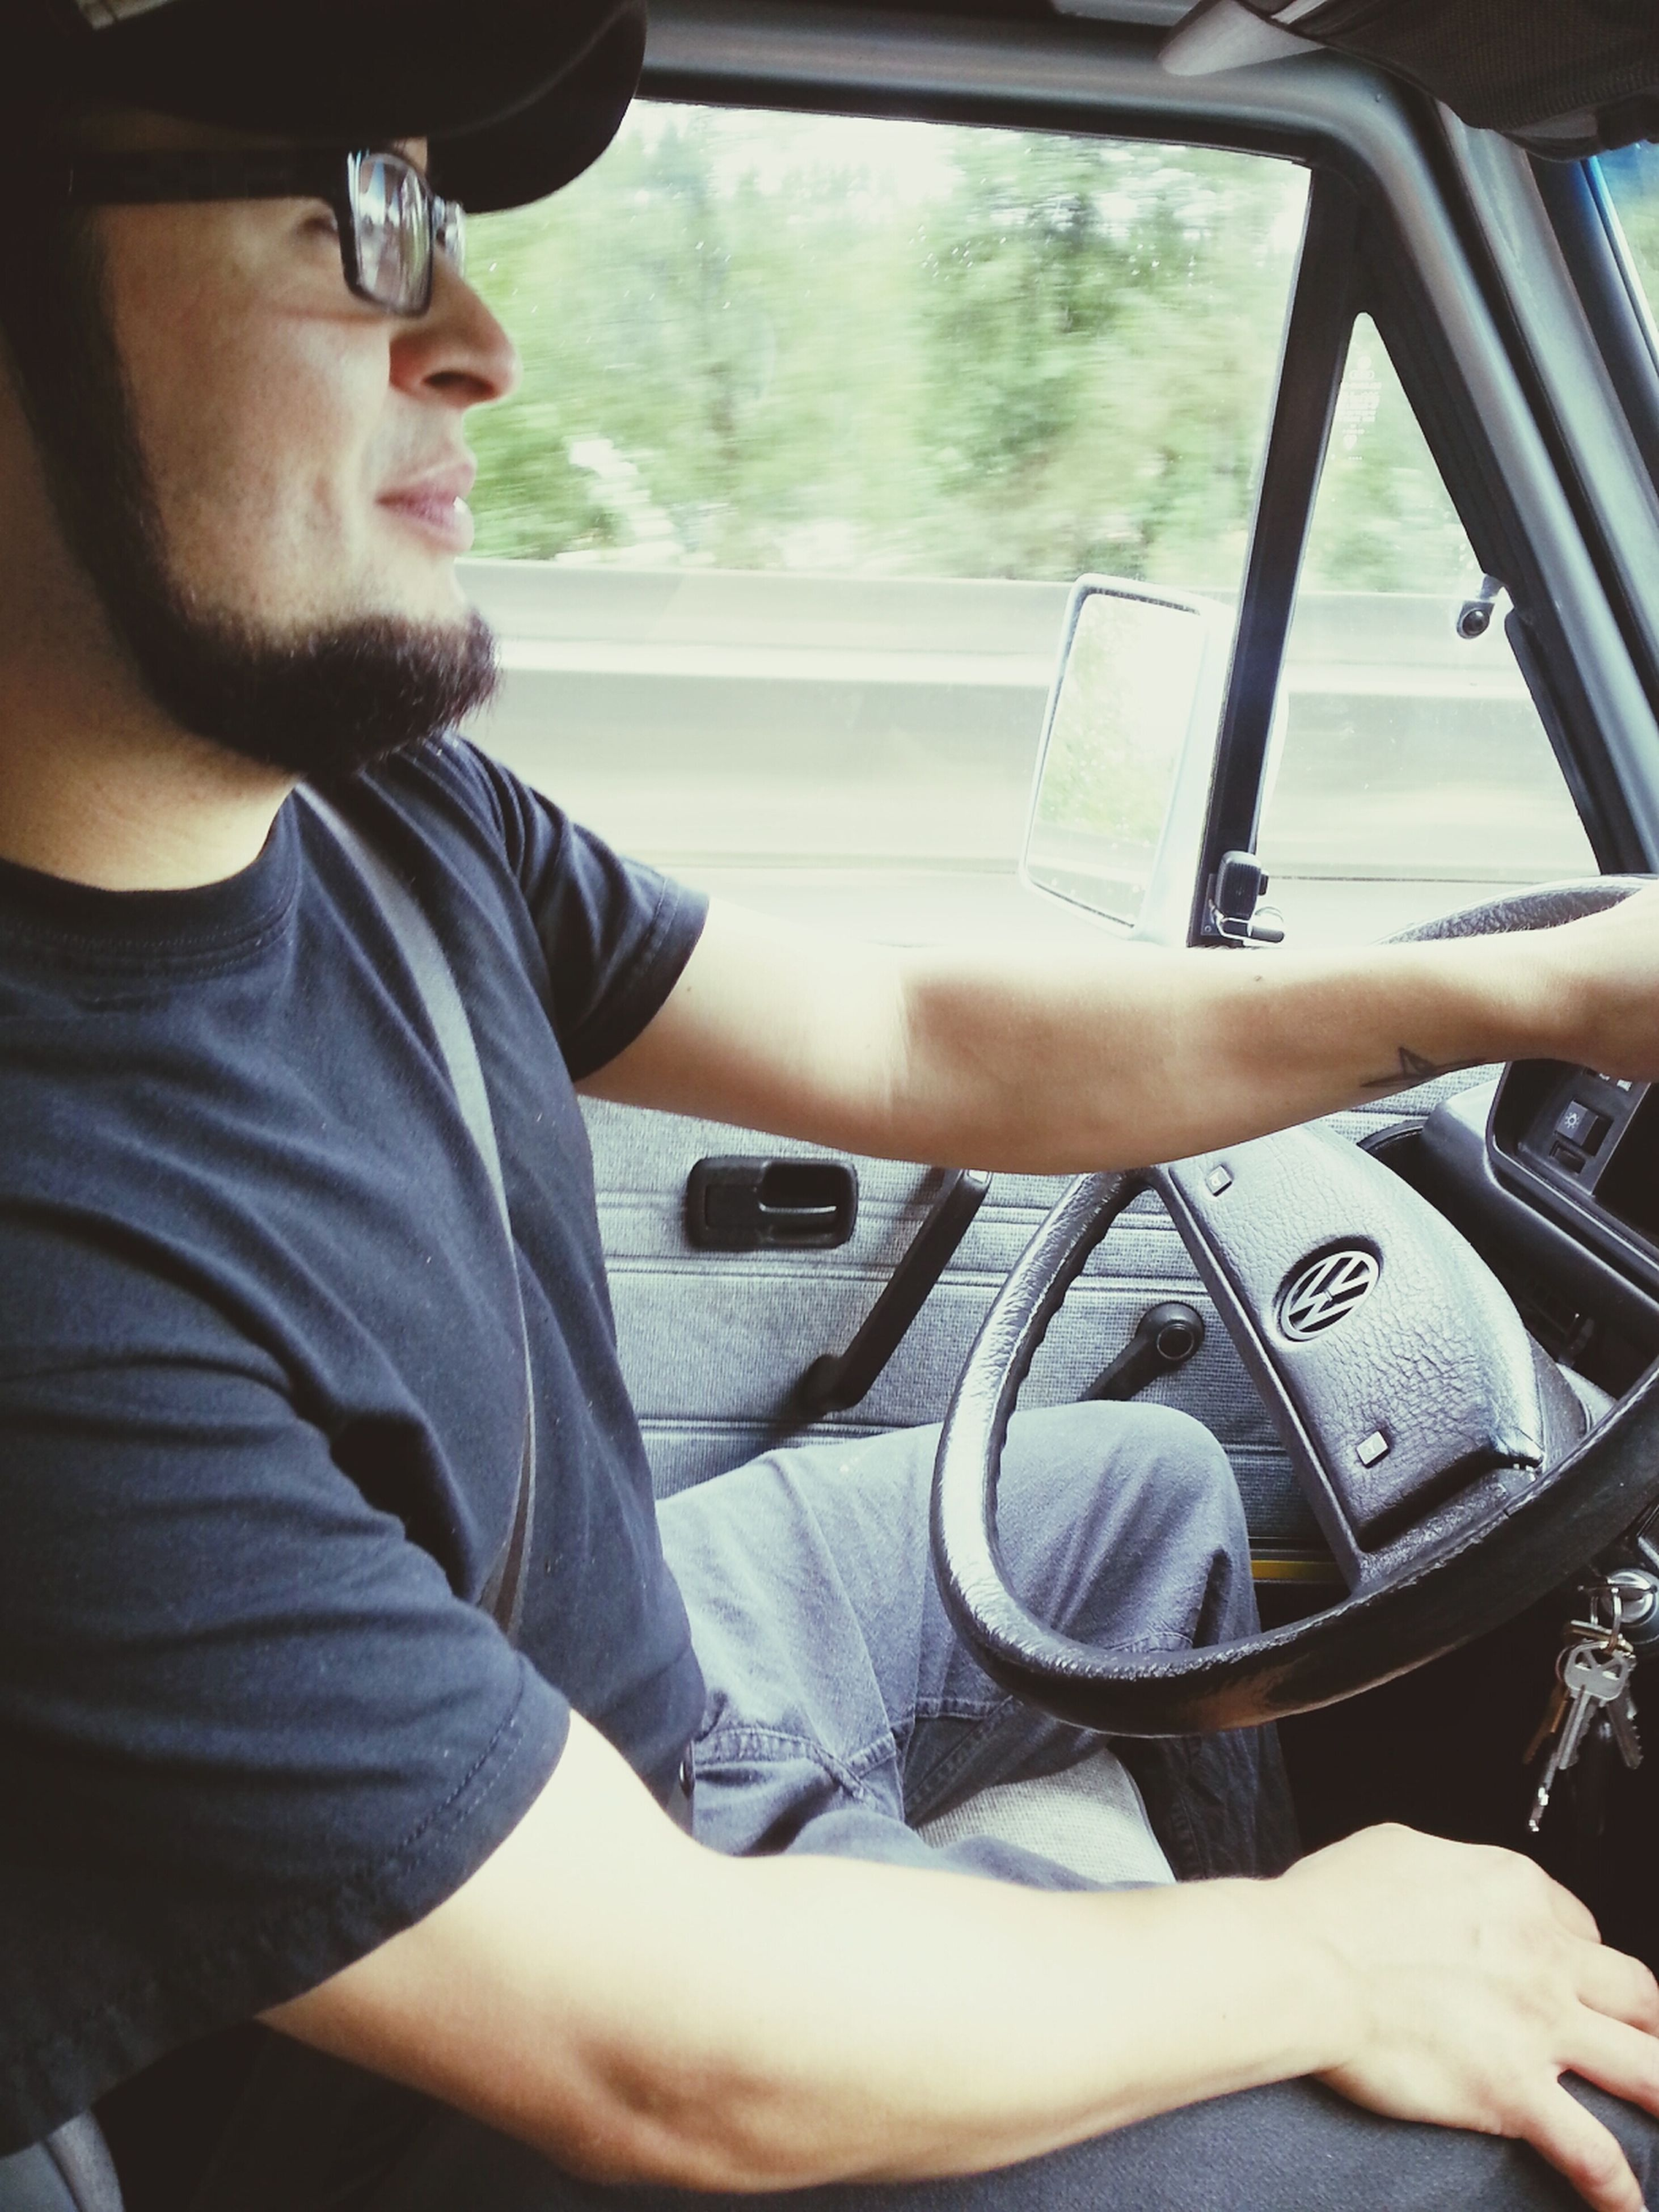 young adult, lifestyles, person, mode of transport, transportation, leisure activity, vehicle interior, young men, casual clothing, sitting, travel, land vehicle, portrait, car, sunglasses, looking at camera, water